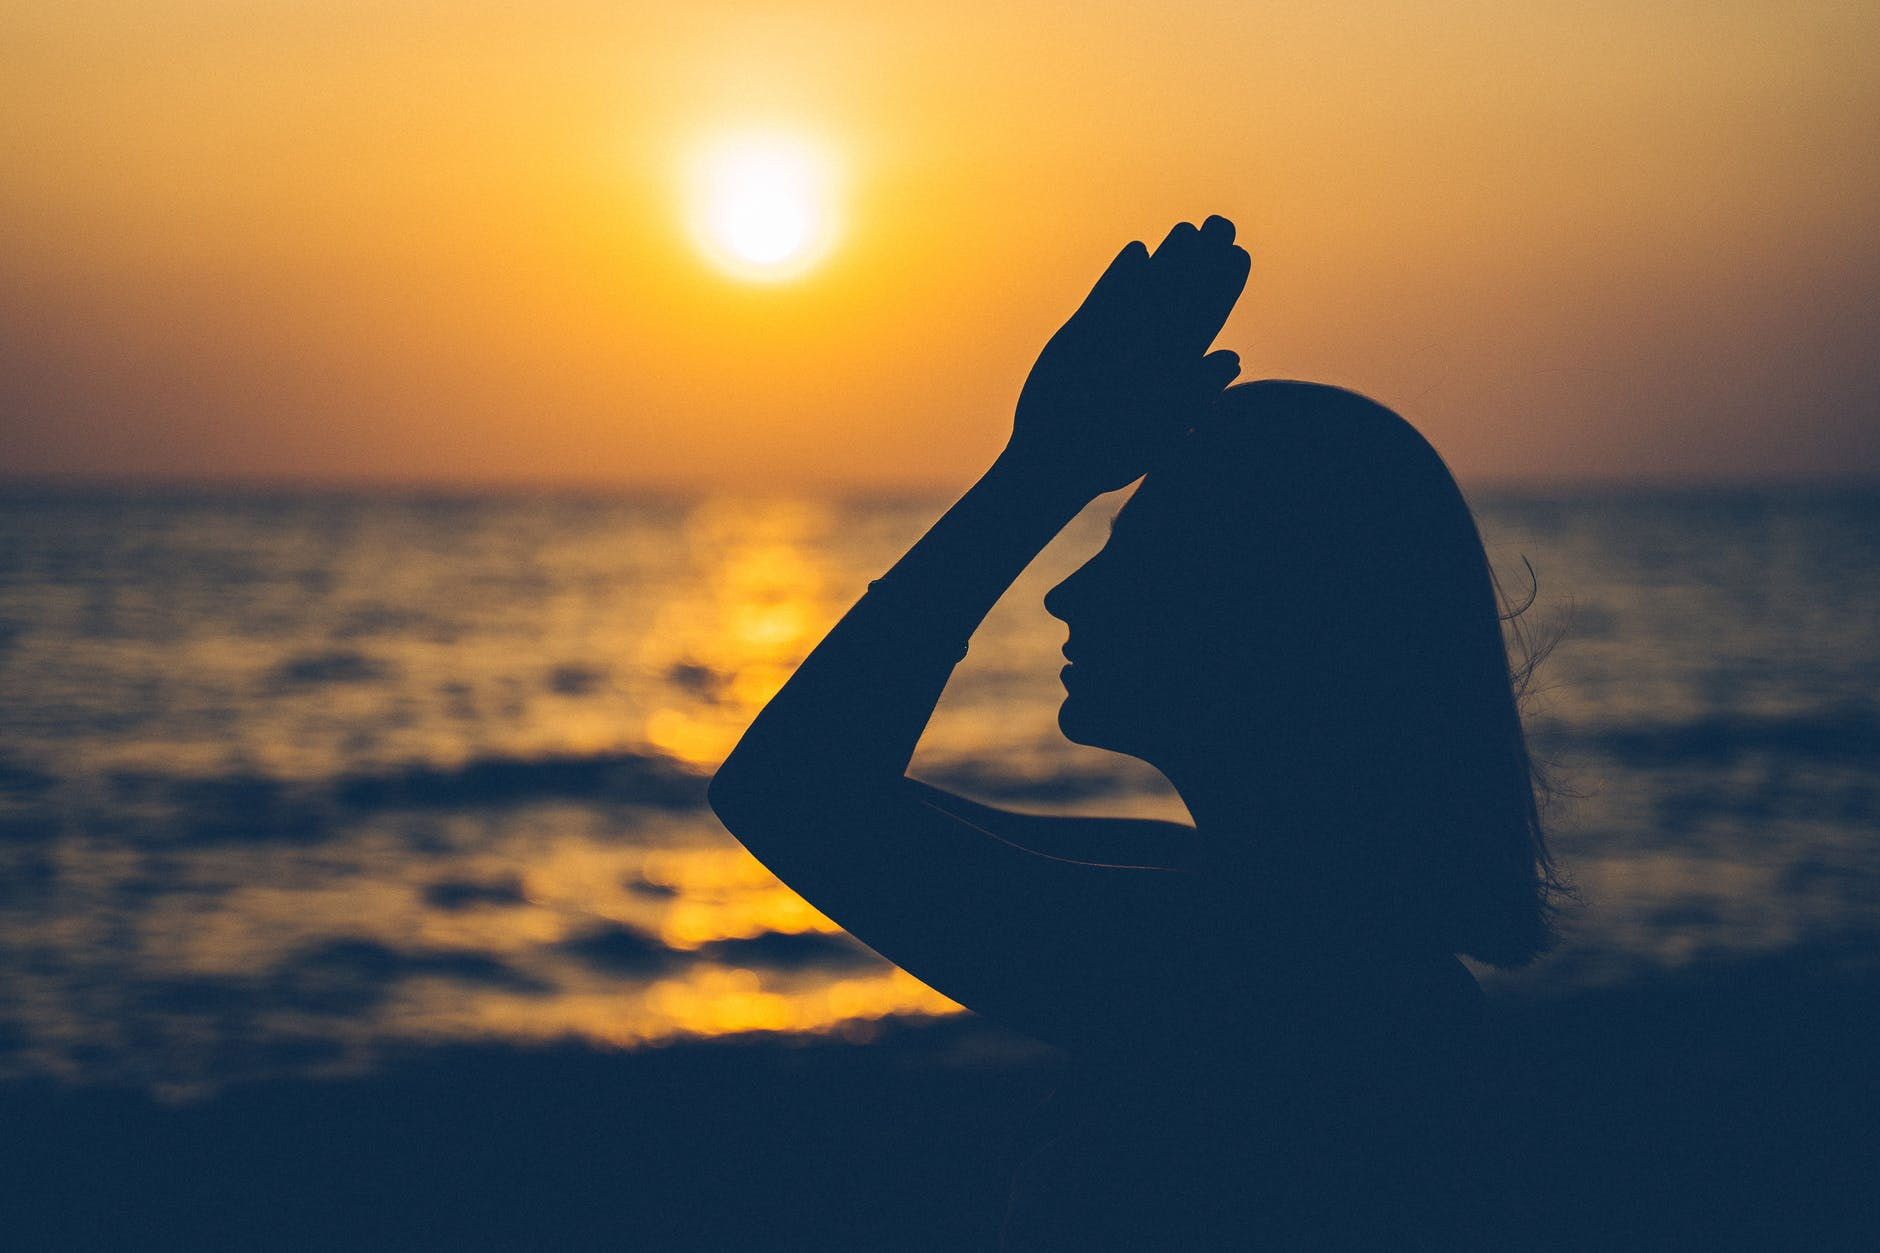 silhouette of woman standing against sunset